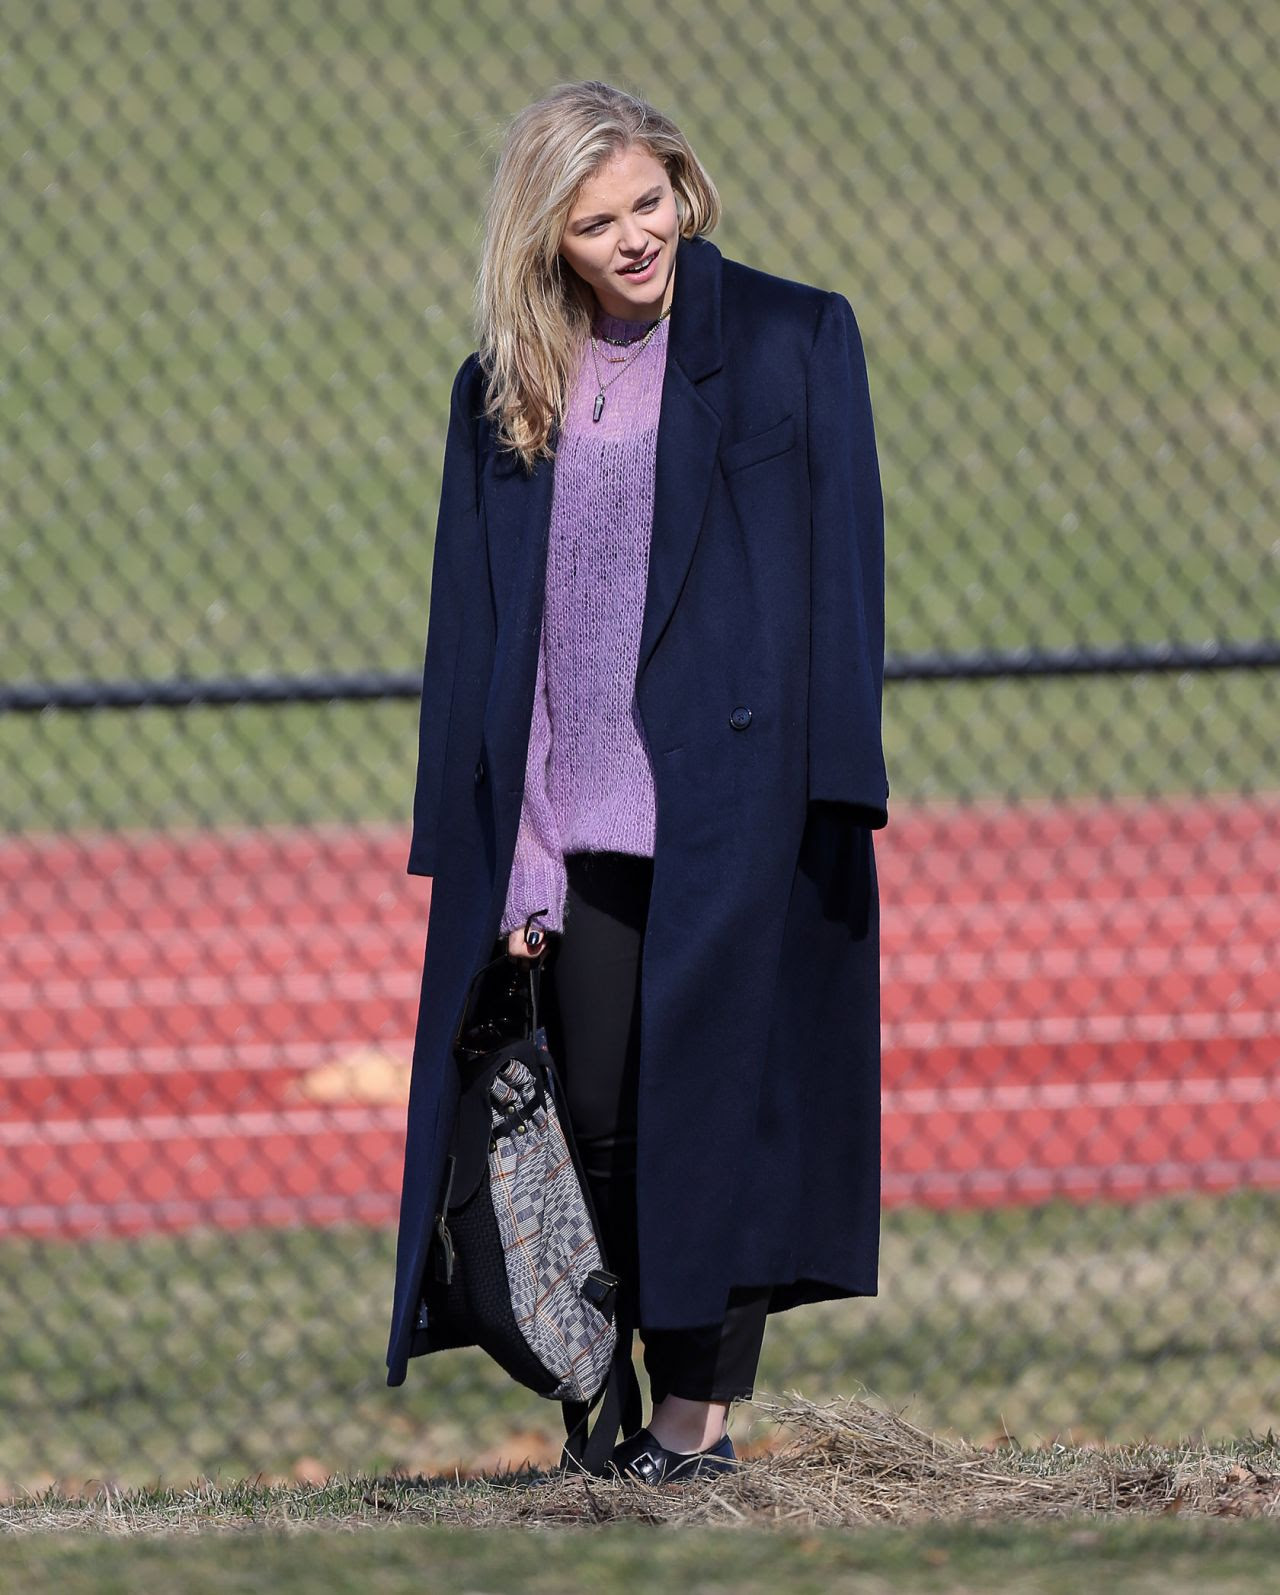 http://celebmafia.com/wp-content/uploads/2015/04/chloe-moretz-set-of-november-criminals-in-providence-rhode-island-april-2015_16.jpg